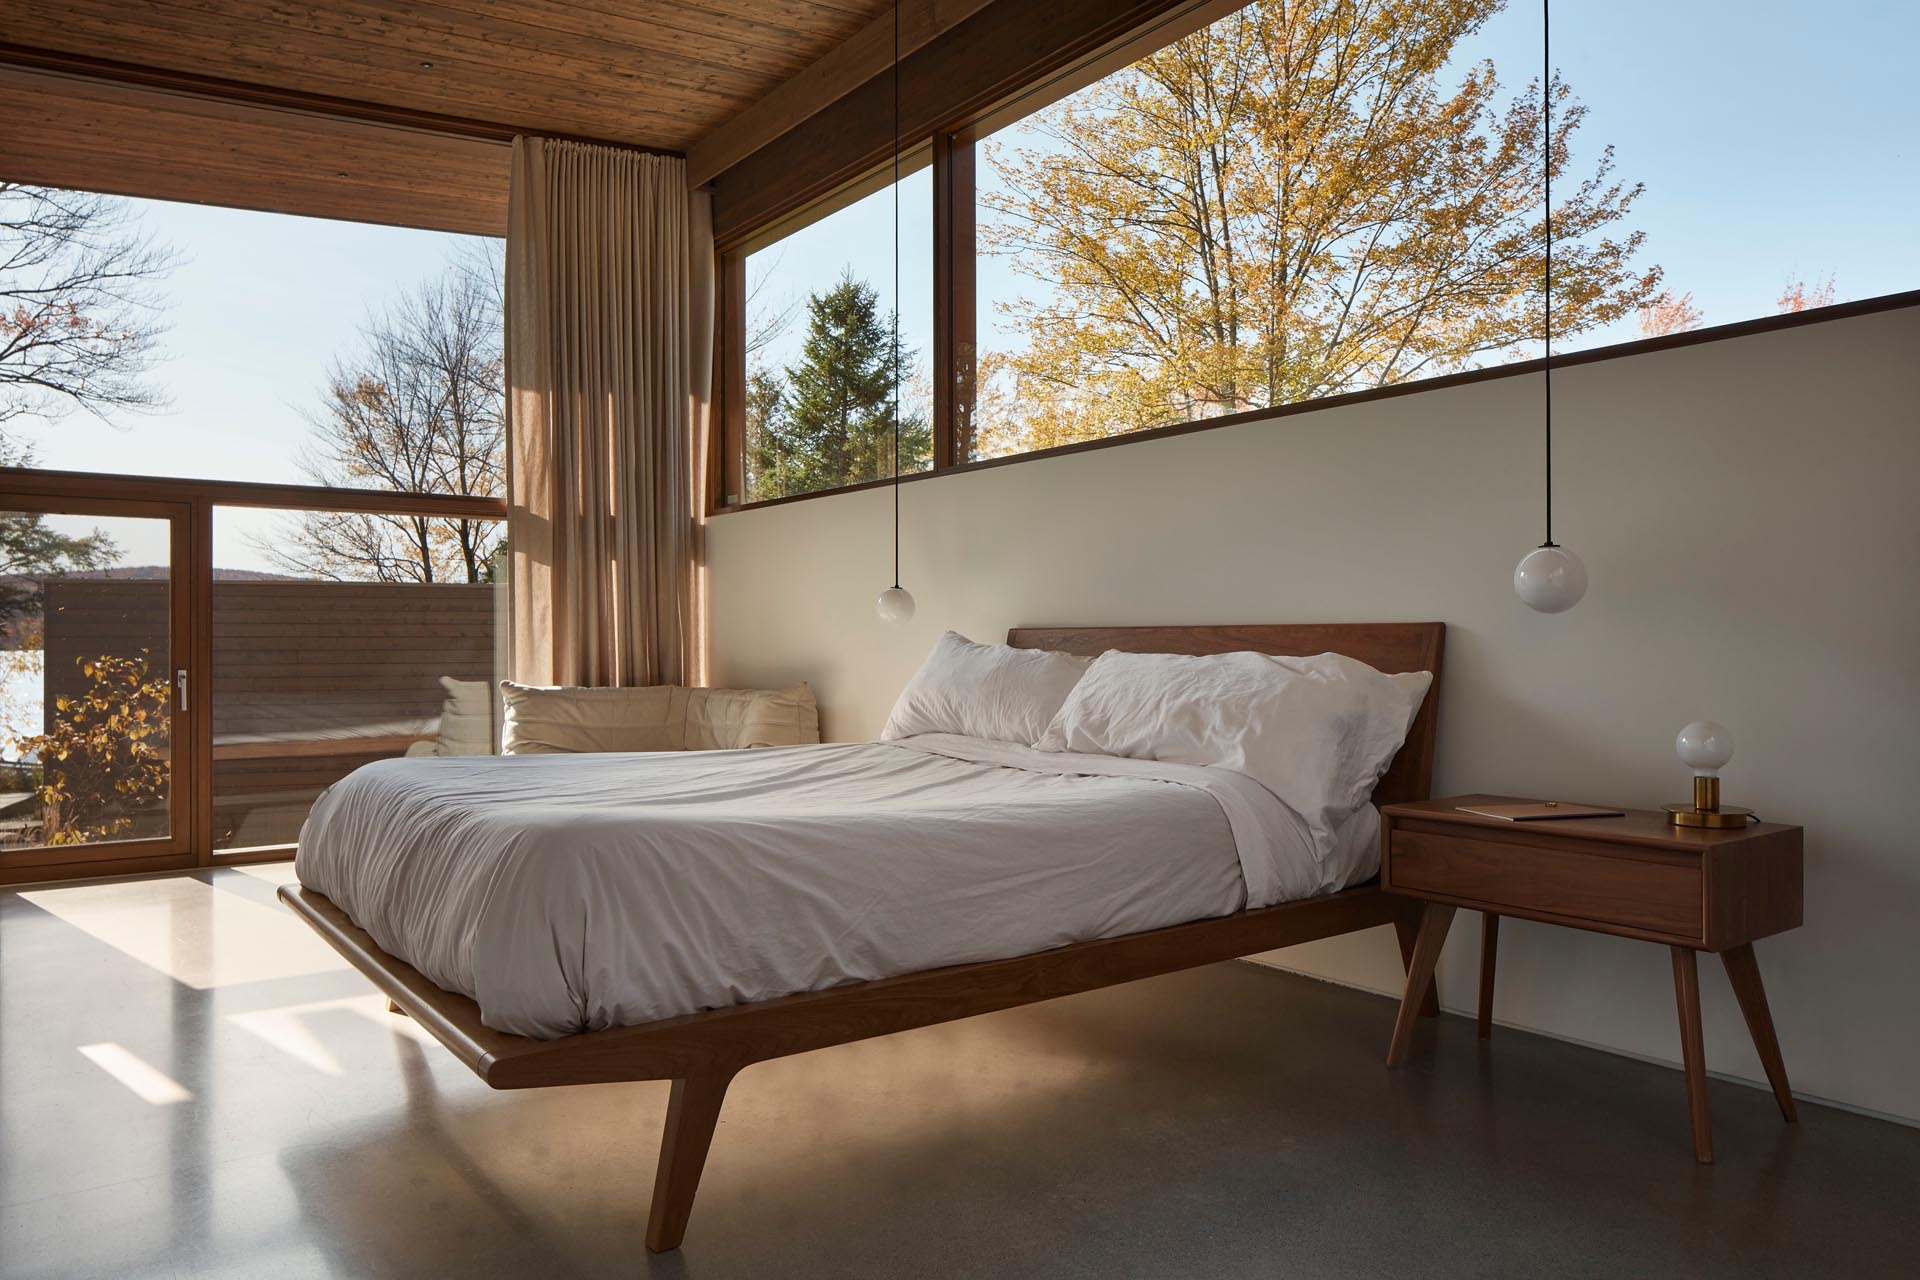 A modern bedroom with a concrete floor and a wood bed frame with matching side tables.